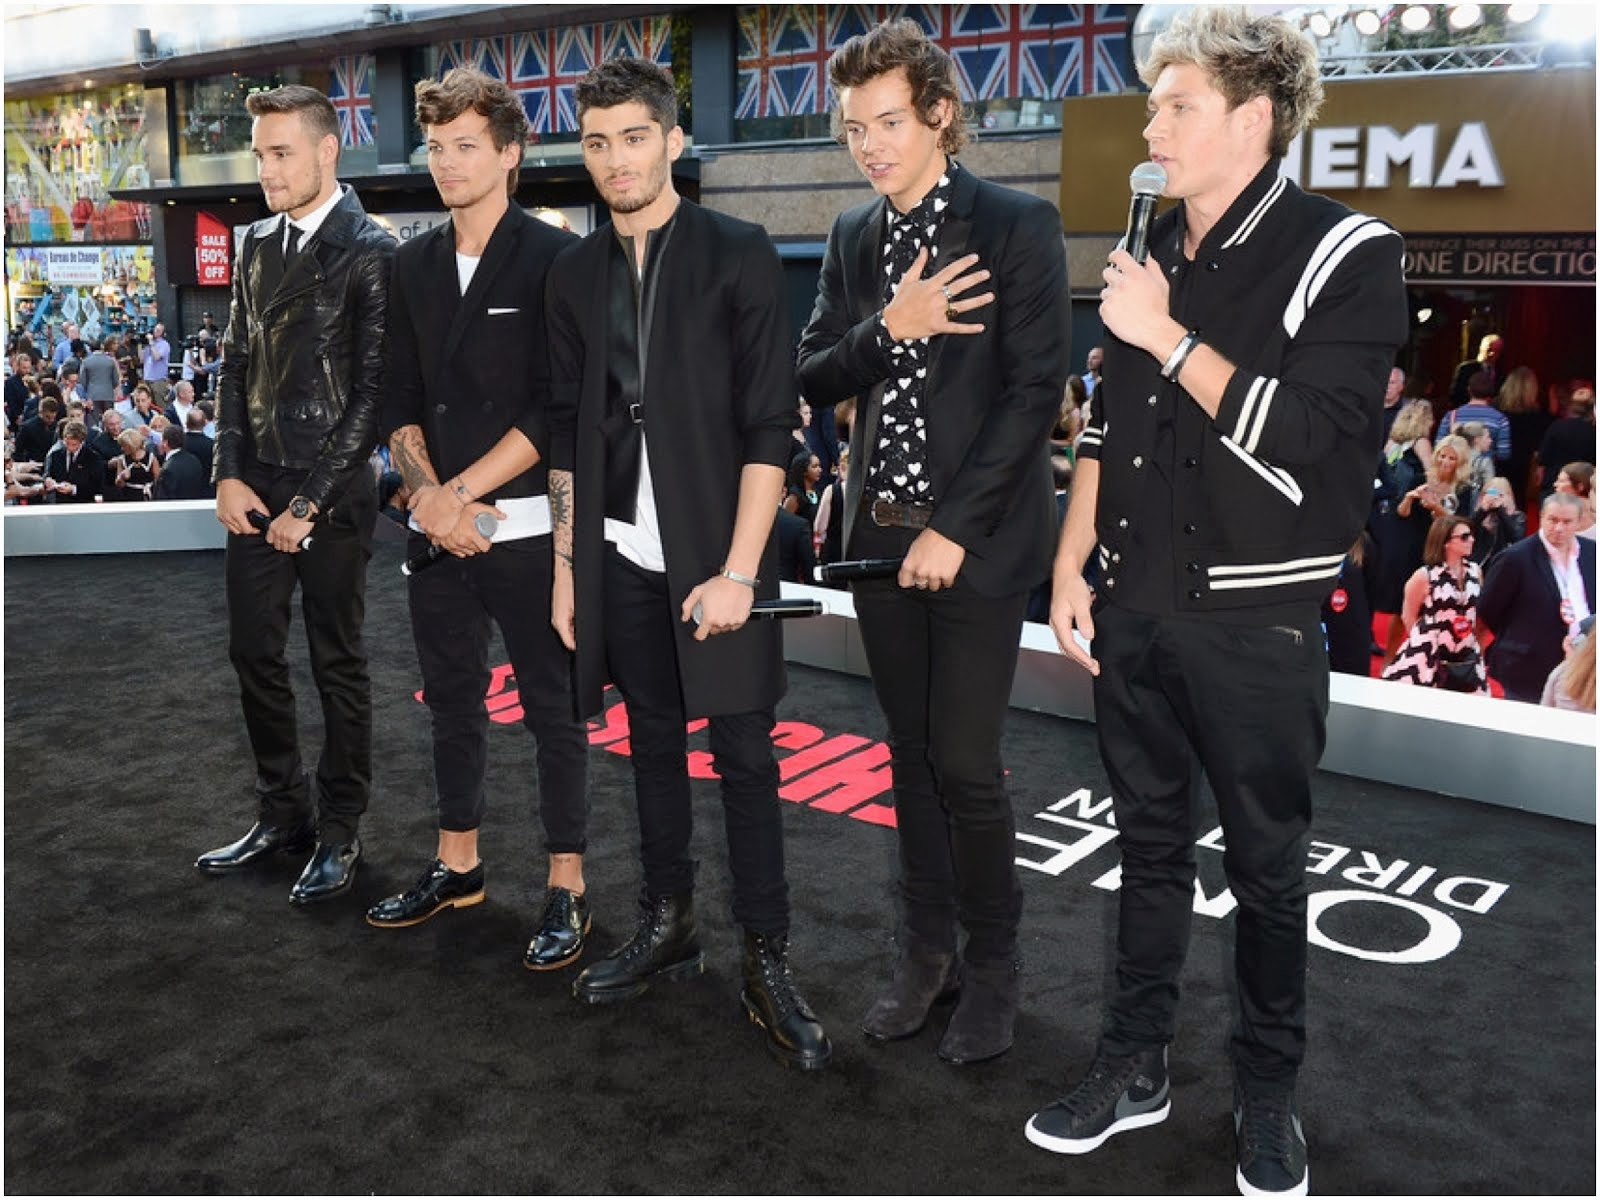 00O00 Menswear Blog: Zayn Malik in Lee Roach - 'One Direction: This Is Us' World Premiere in London August 2013